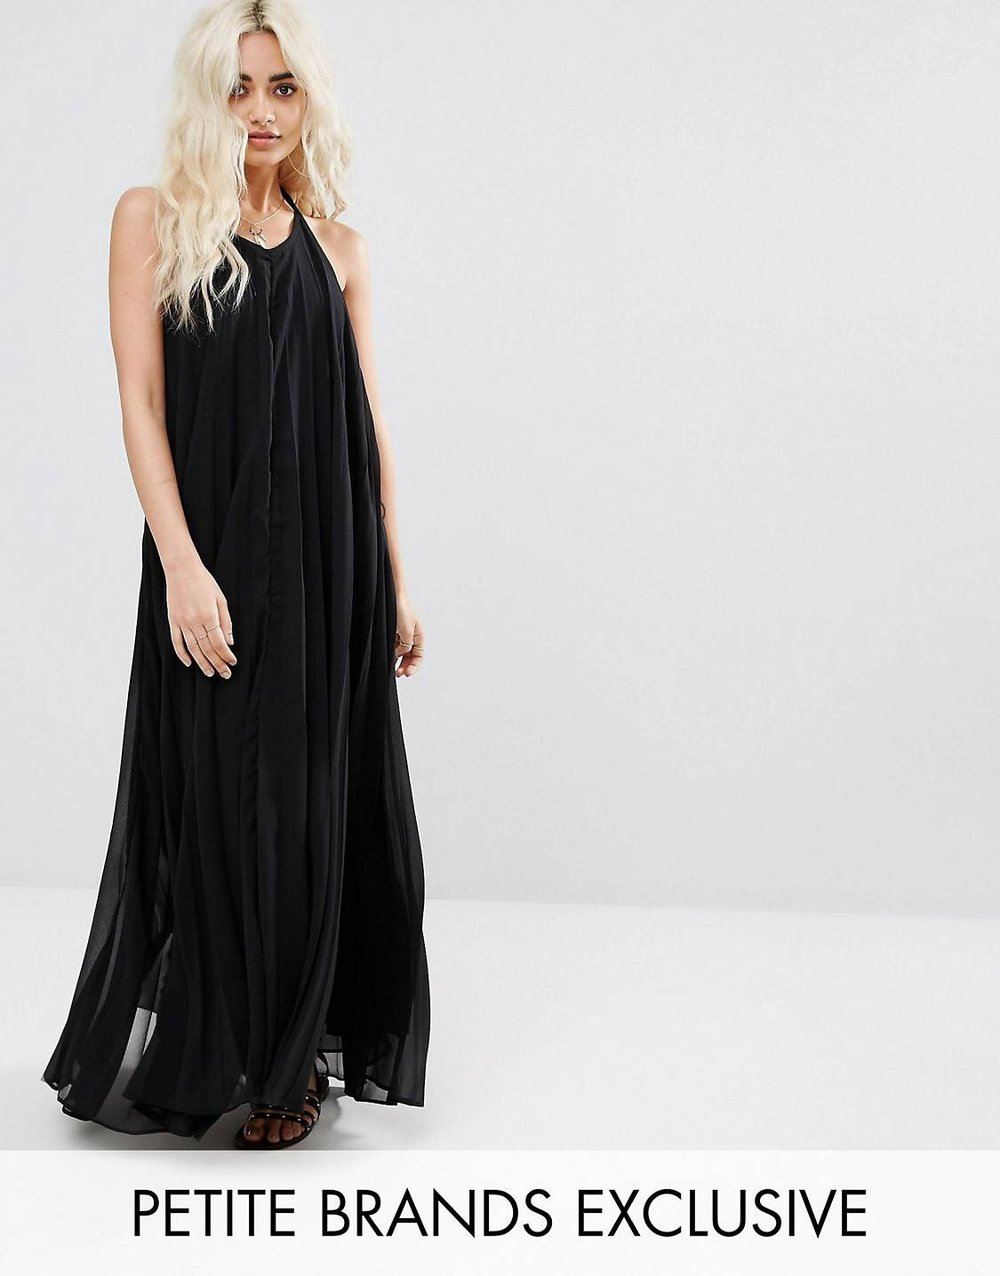 £17.50 Missguided pleated maxi - I love a good pleat. Usually because it means the outfit is lined. I watched the vid and this appears to be lined to the ankle. So erm, win win.